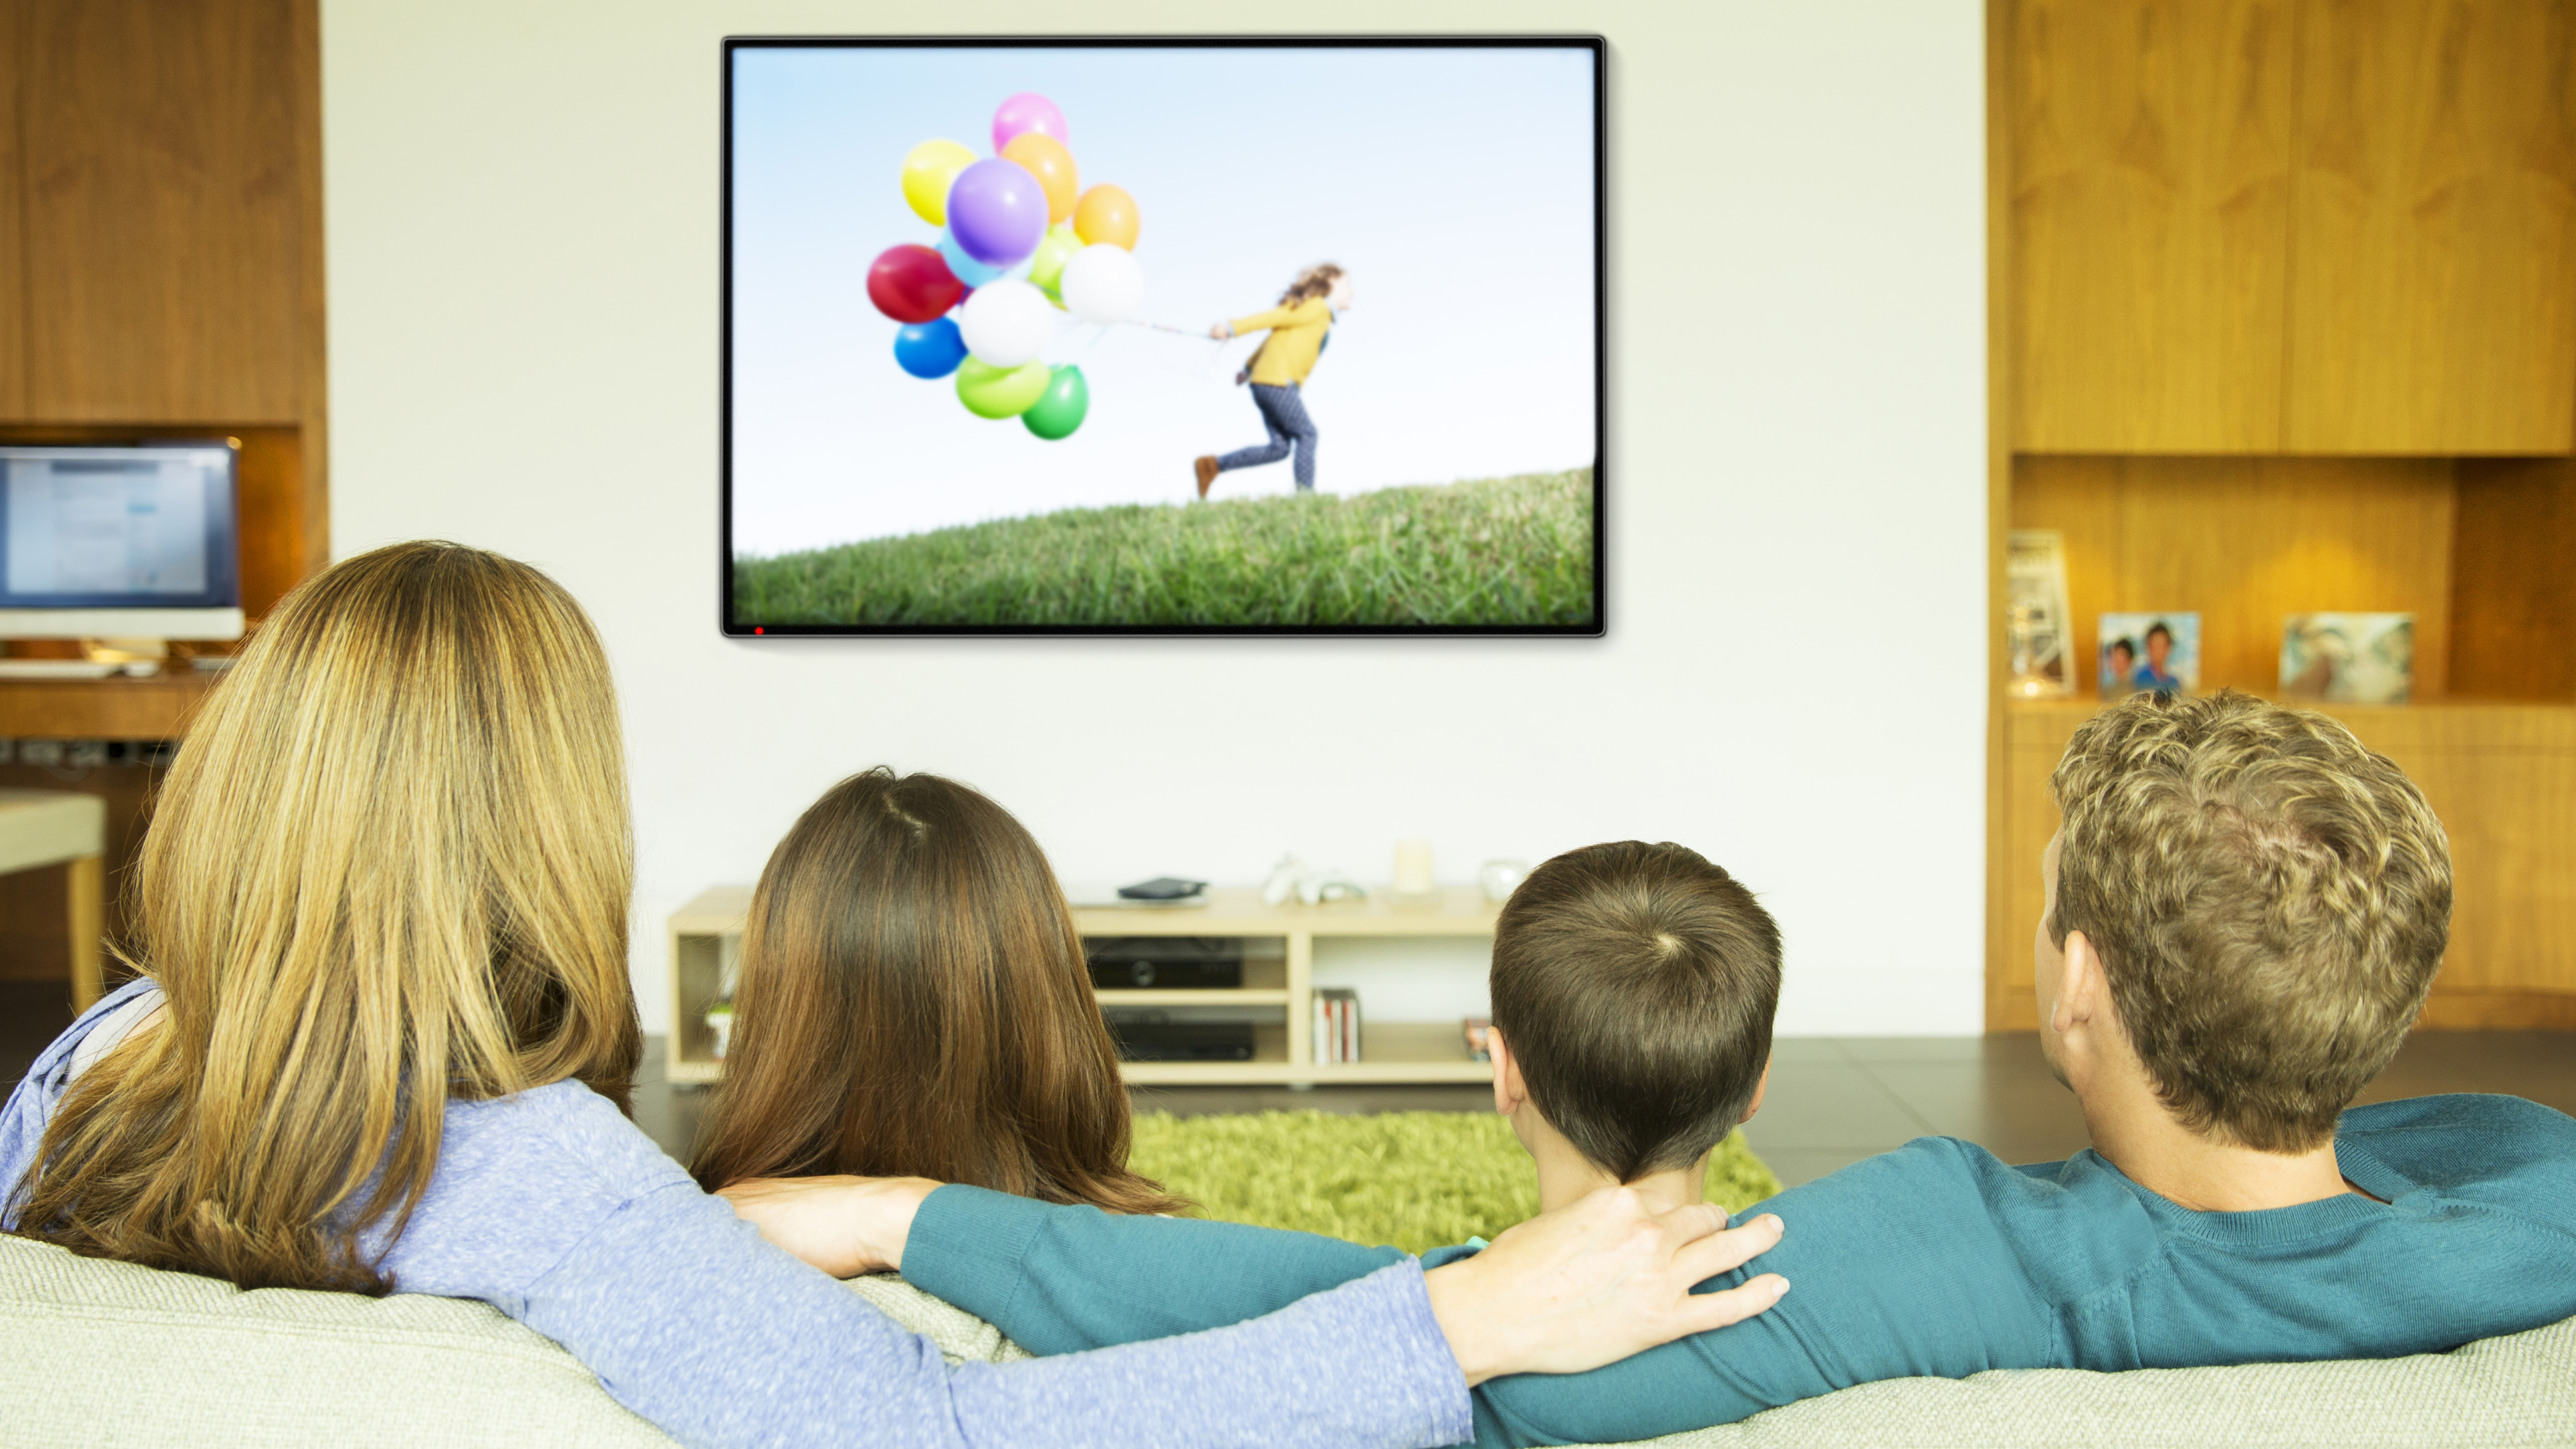 Image result for watching tv by kids,nari